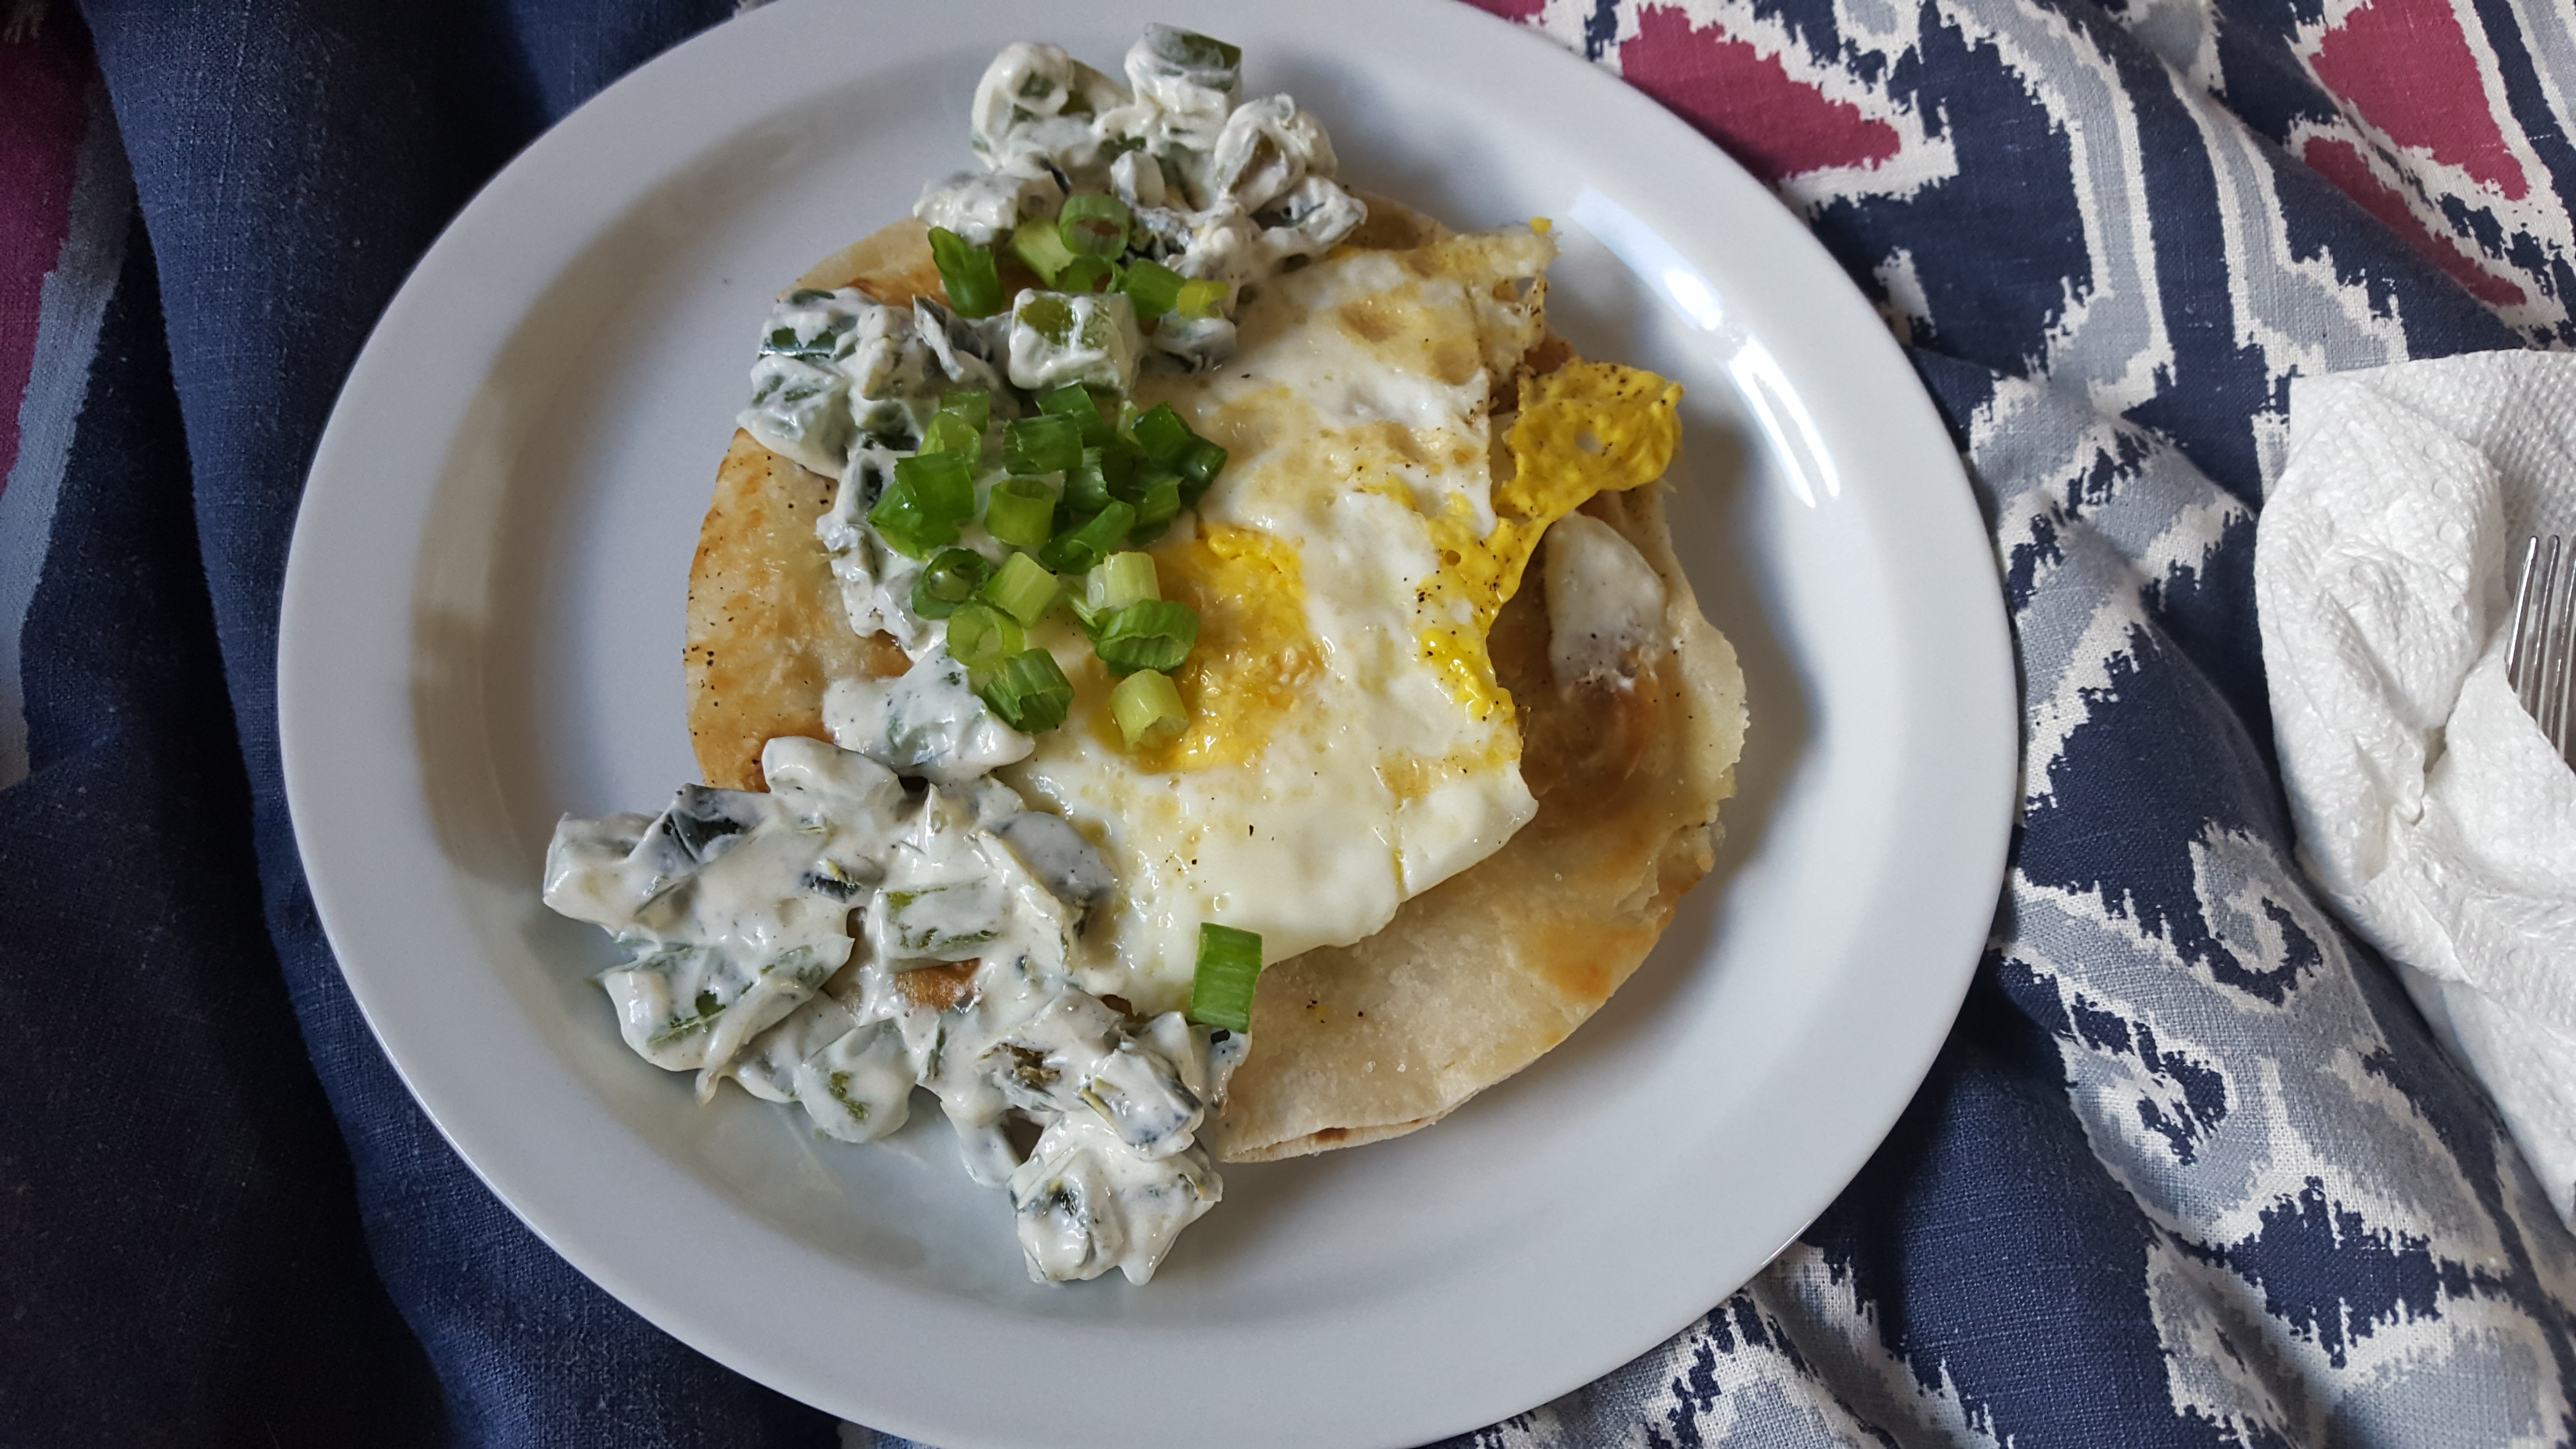 Blue Apron meal cooked by me- cheese quesadilla with a fried egg and poblano pepper sauce.